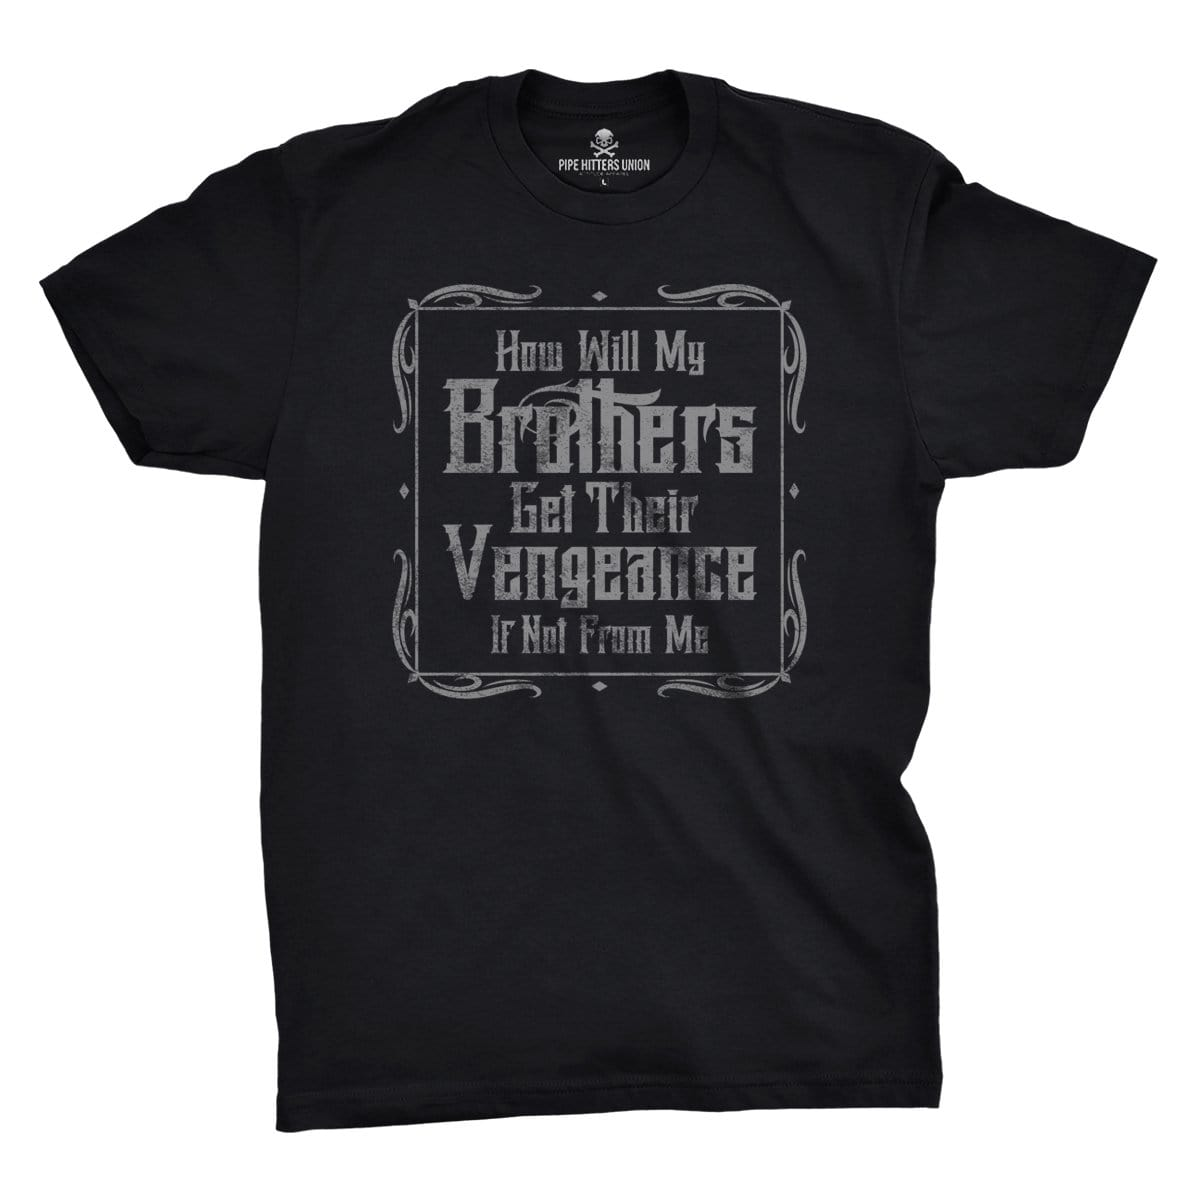 Brother's Vengeance - Pipe Hitters Union